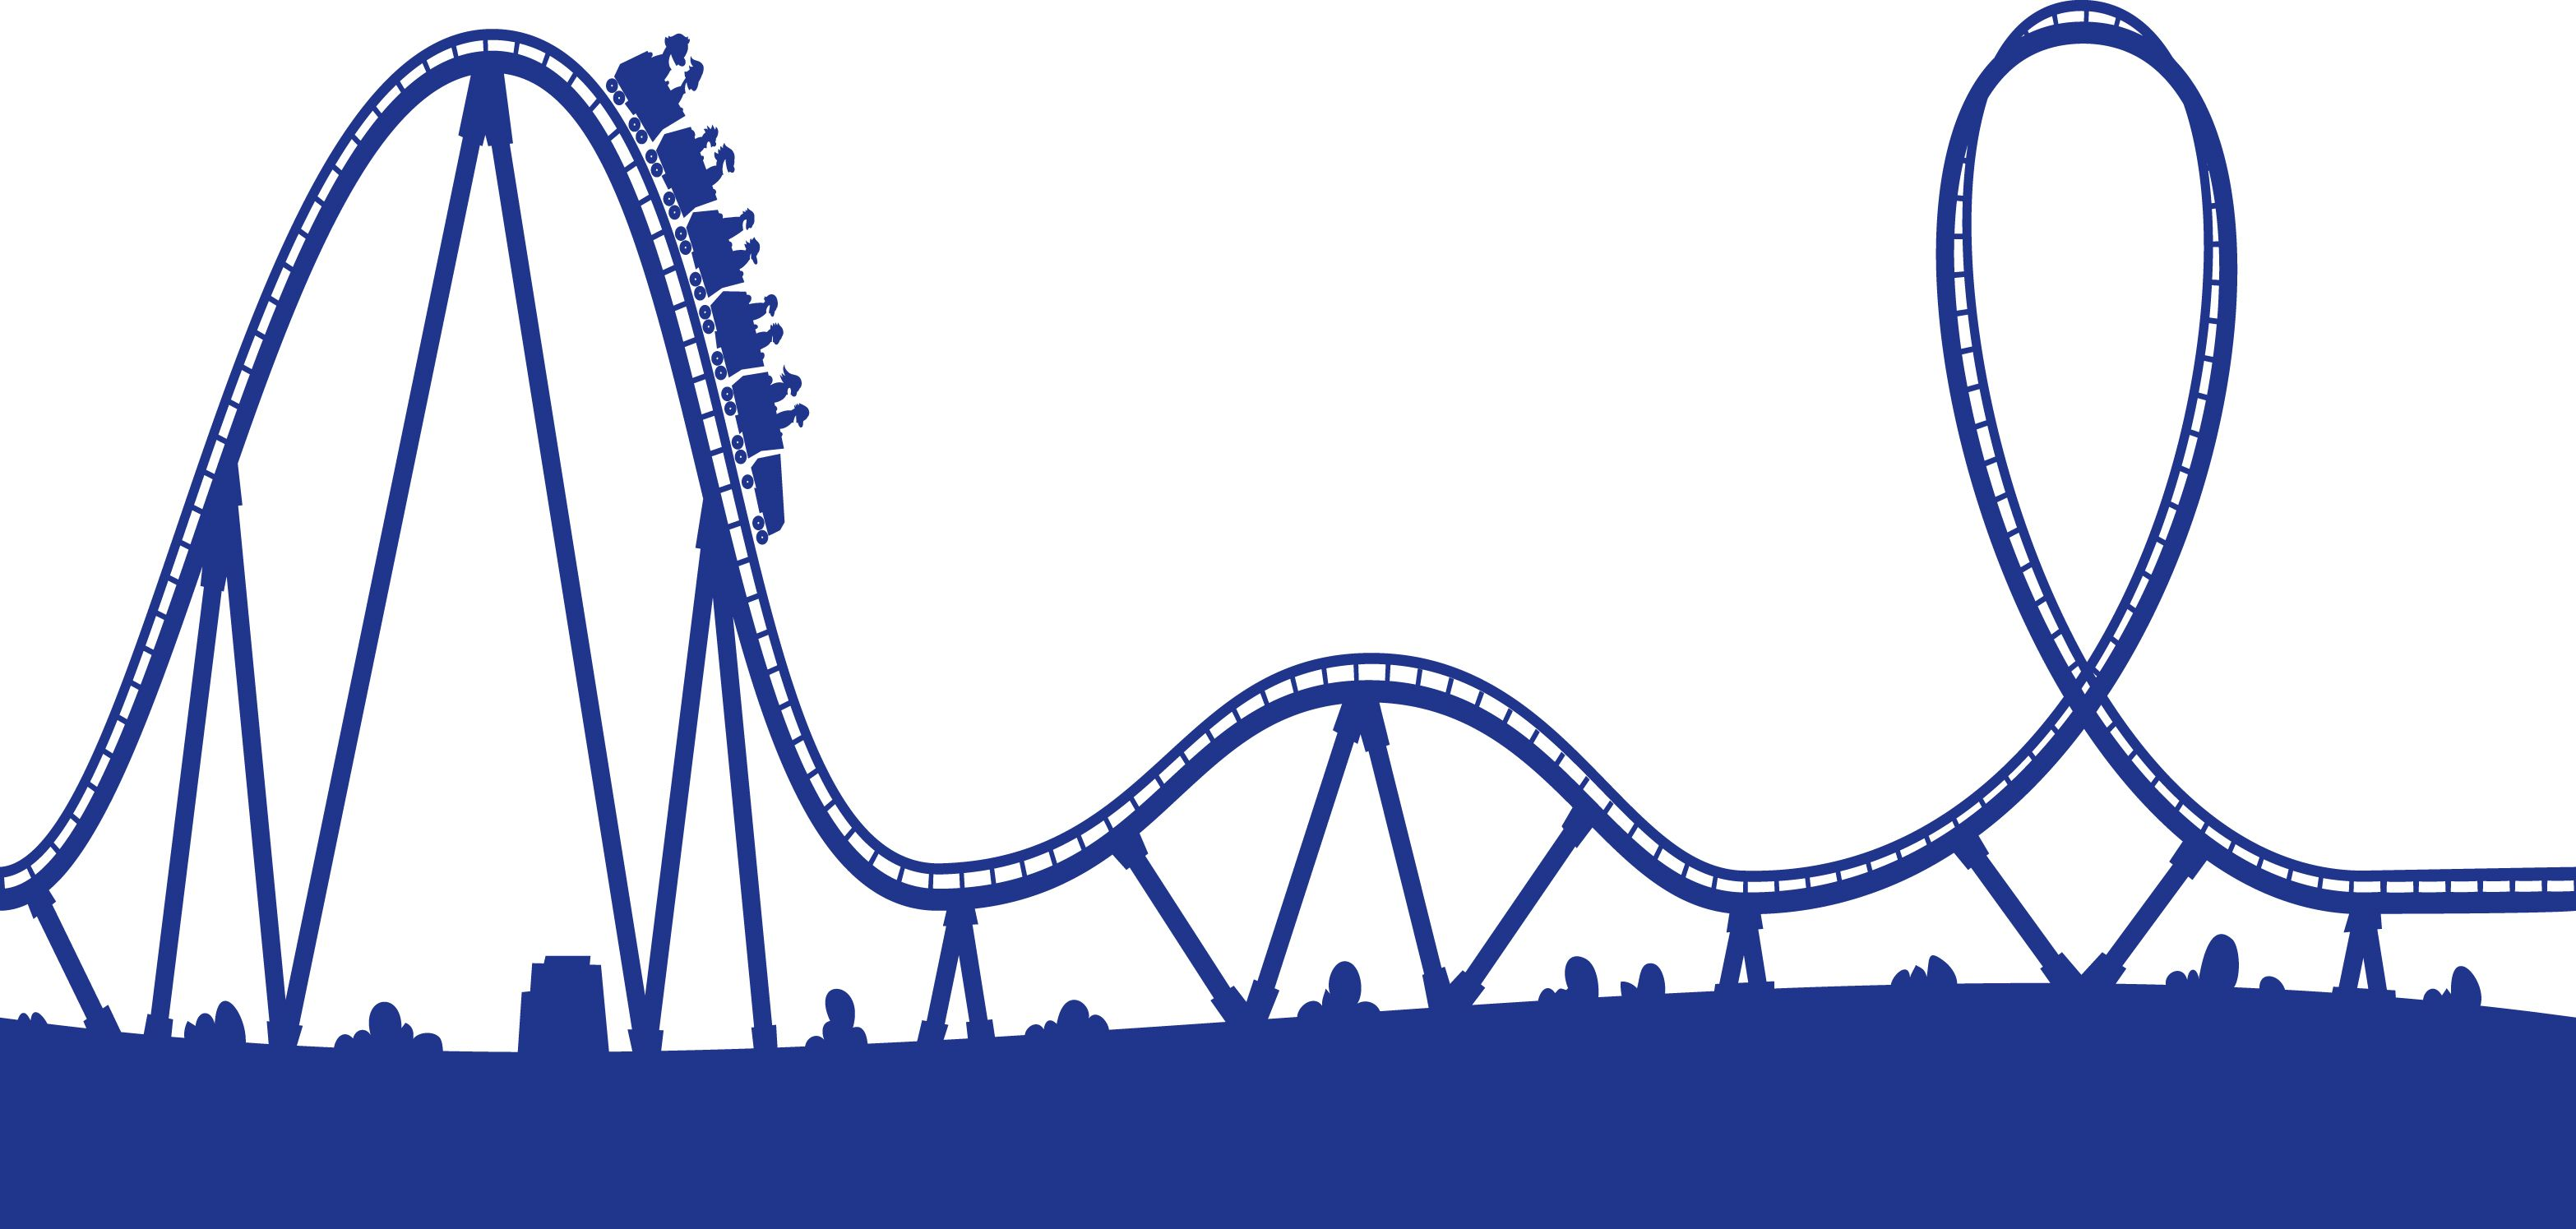 Rollercoaster clipart. Roller coaster track bullets